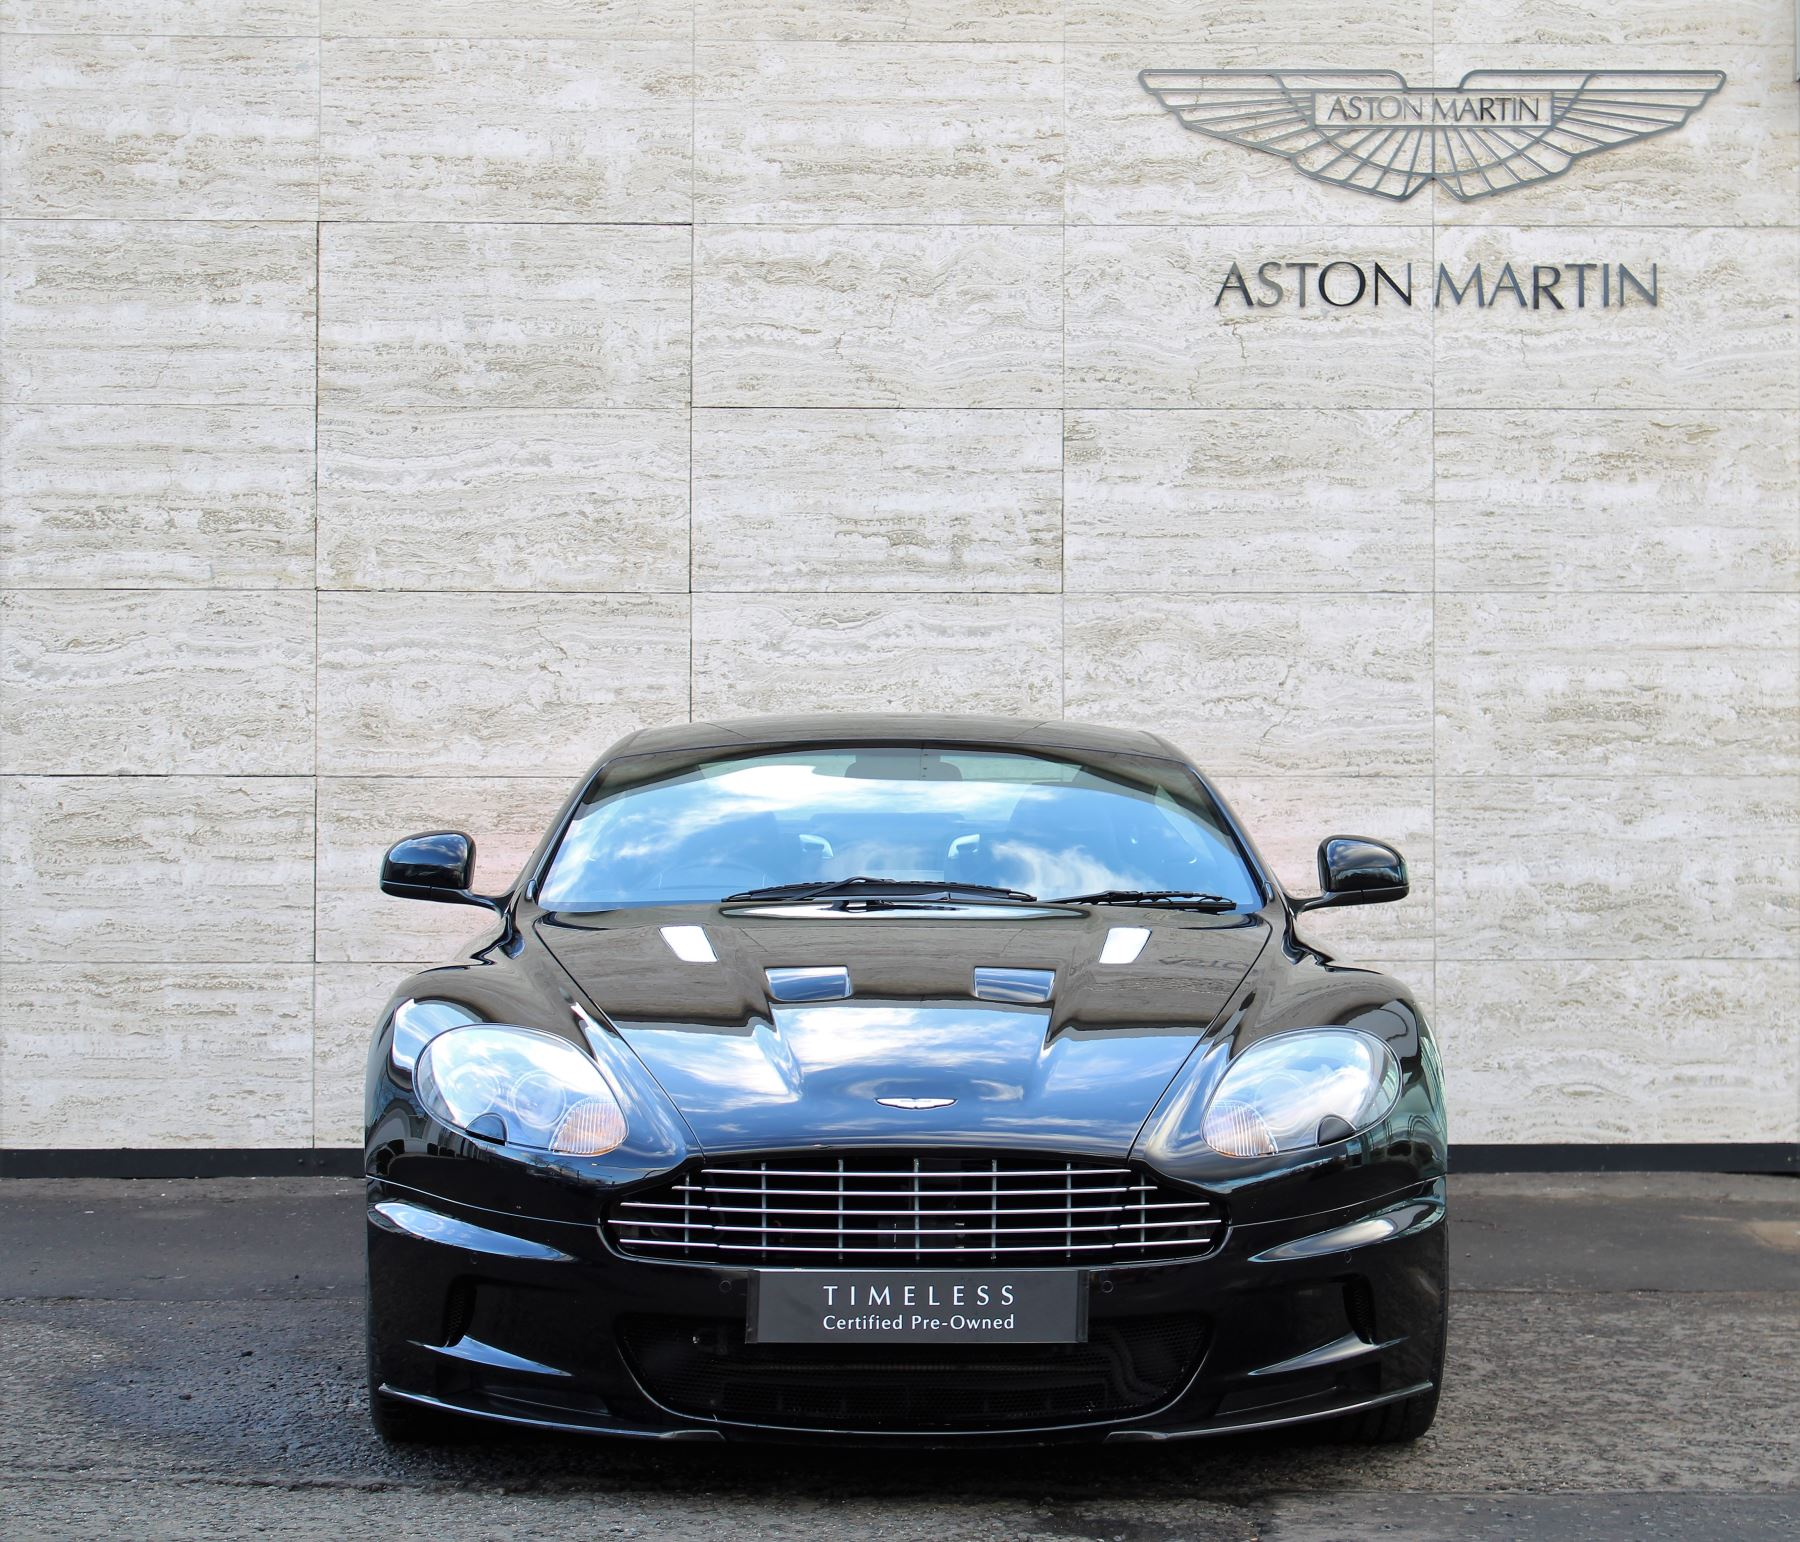 Aston Martin DBS V12 CARBON EDITION 2dr Touchtronic image 3